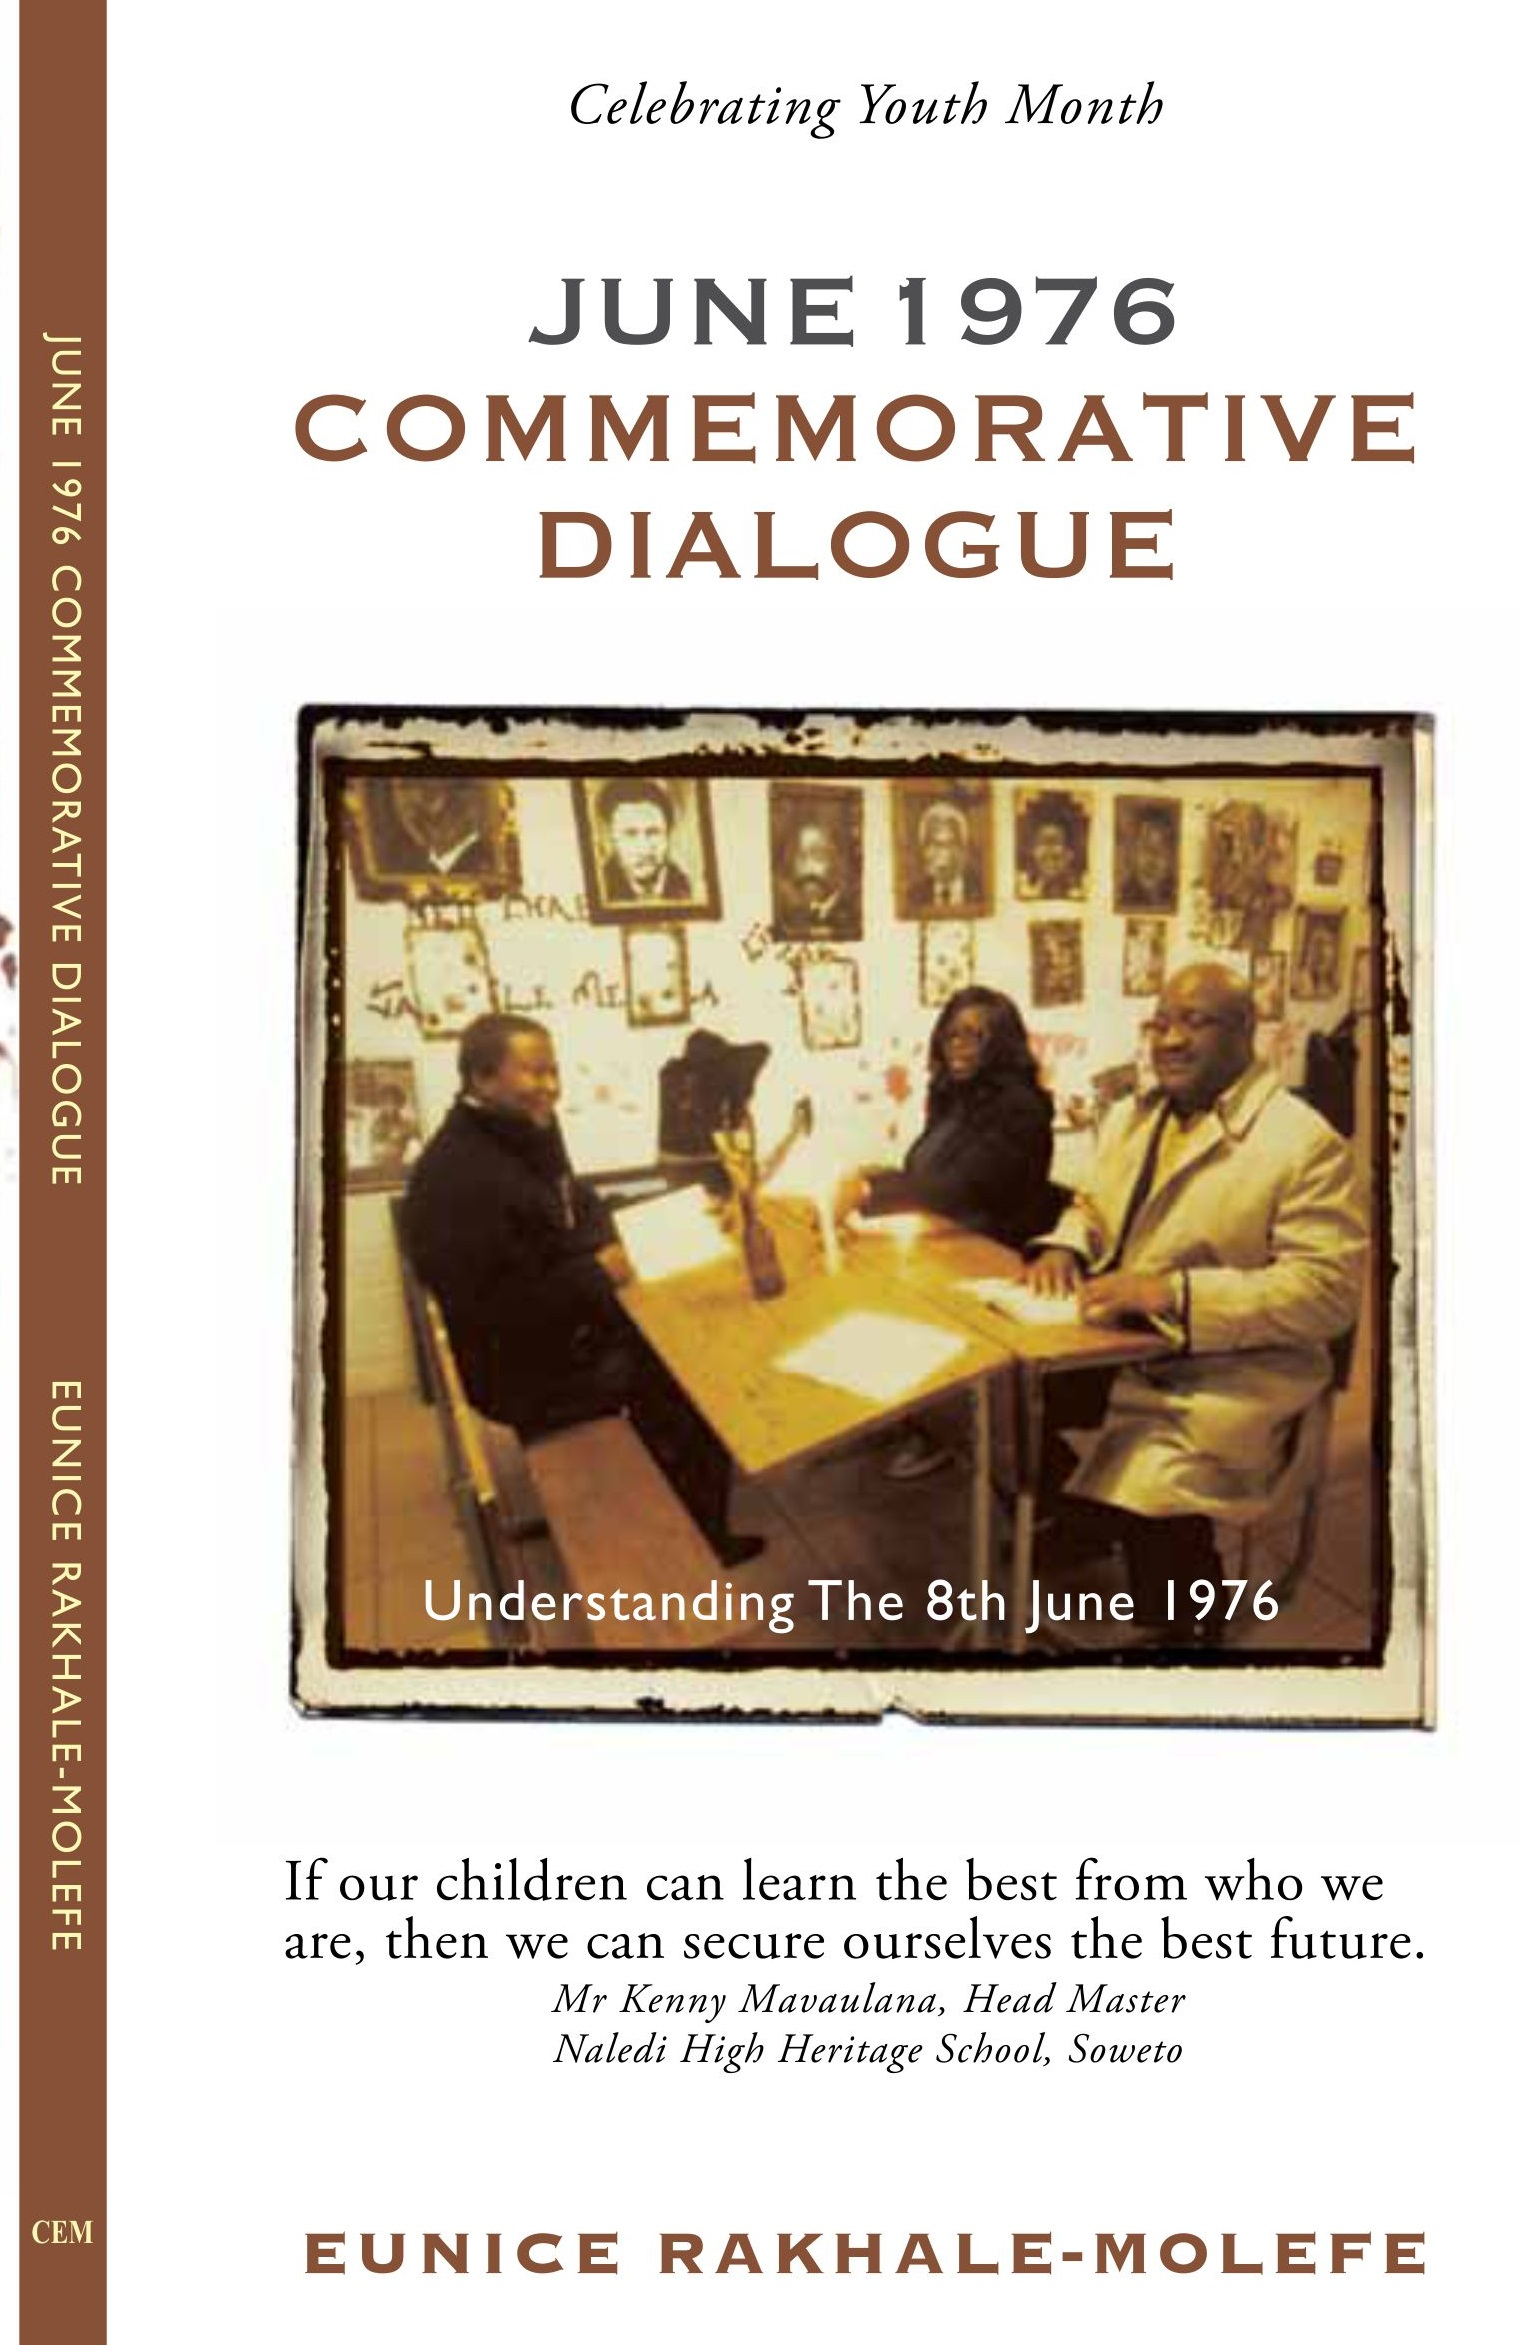 june 1976 commemorative dialogue